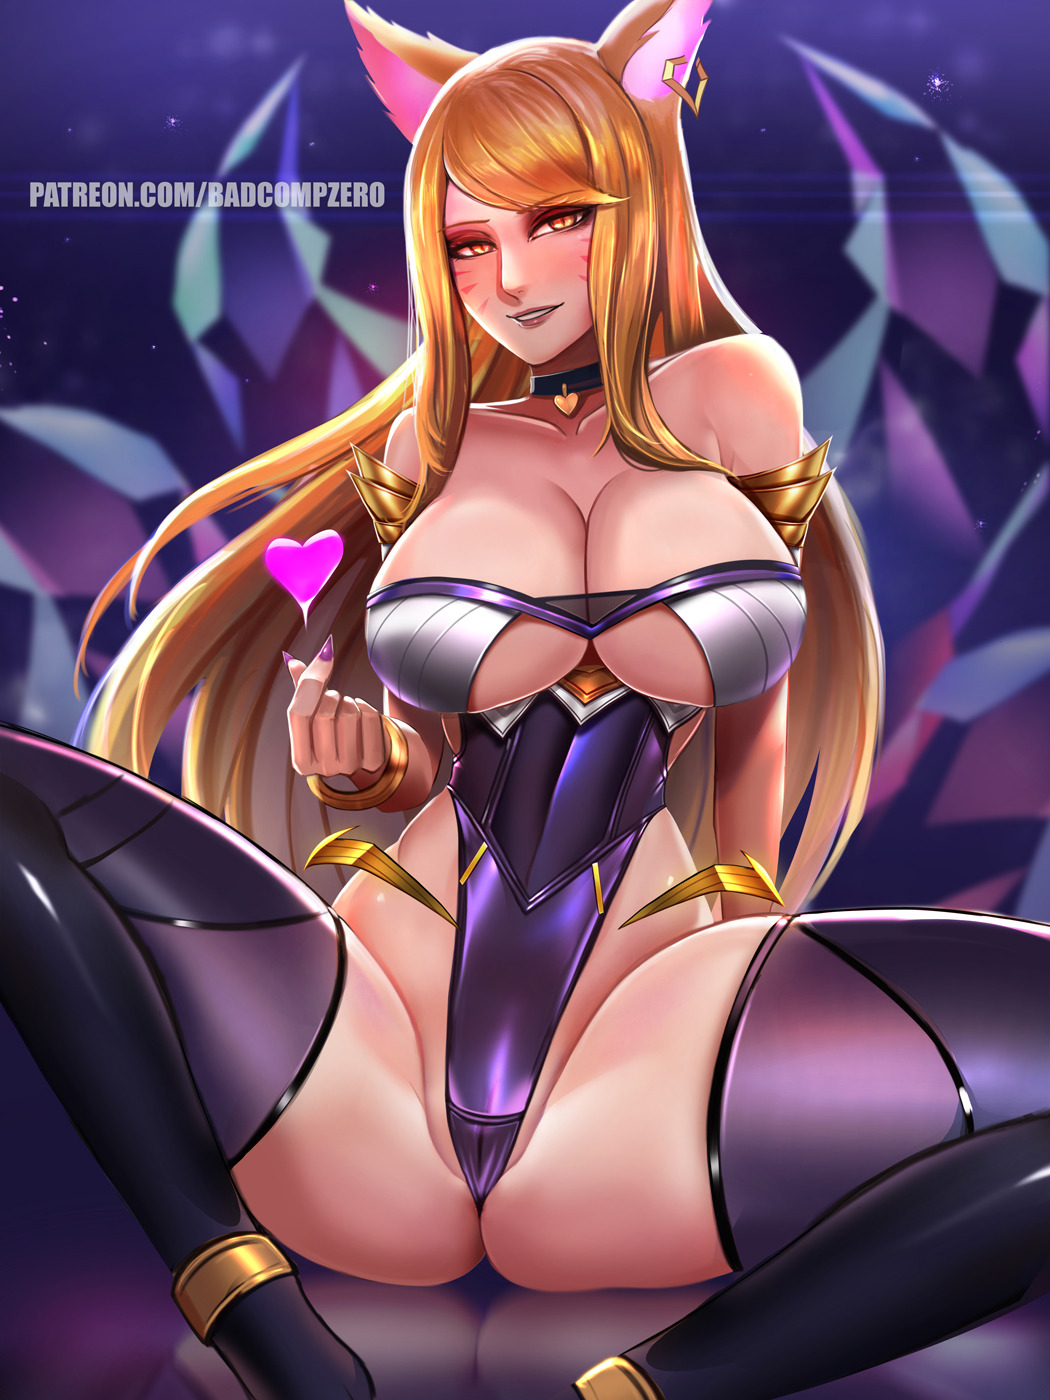 k/da Maelstrom is this a zombie